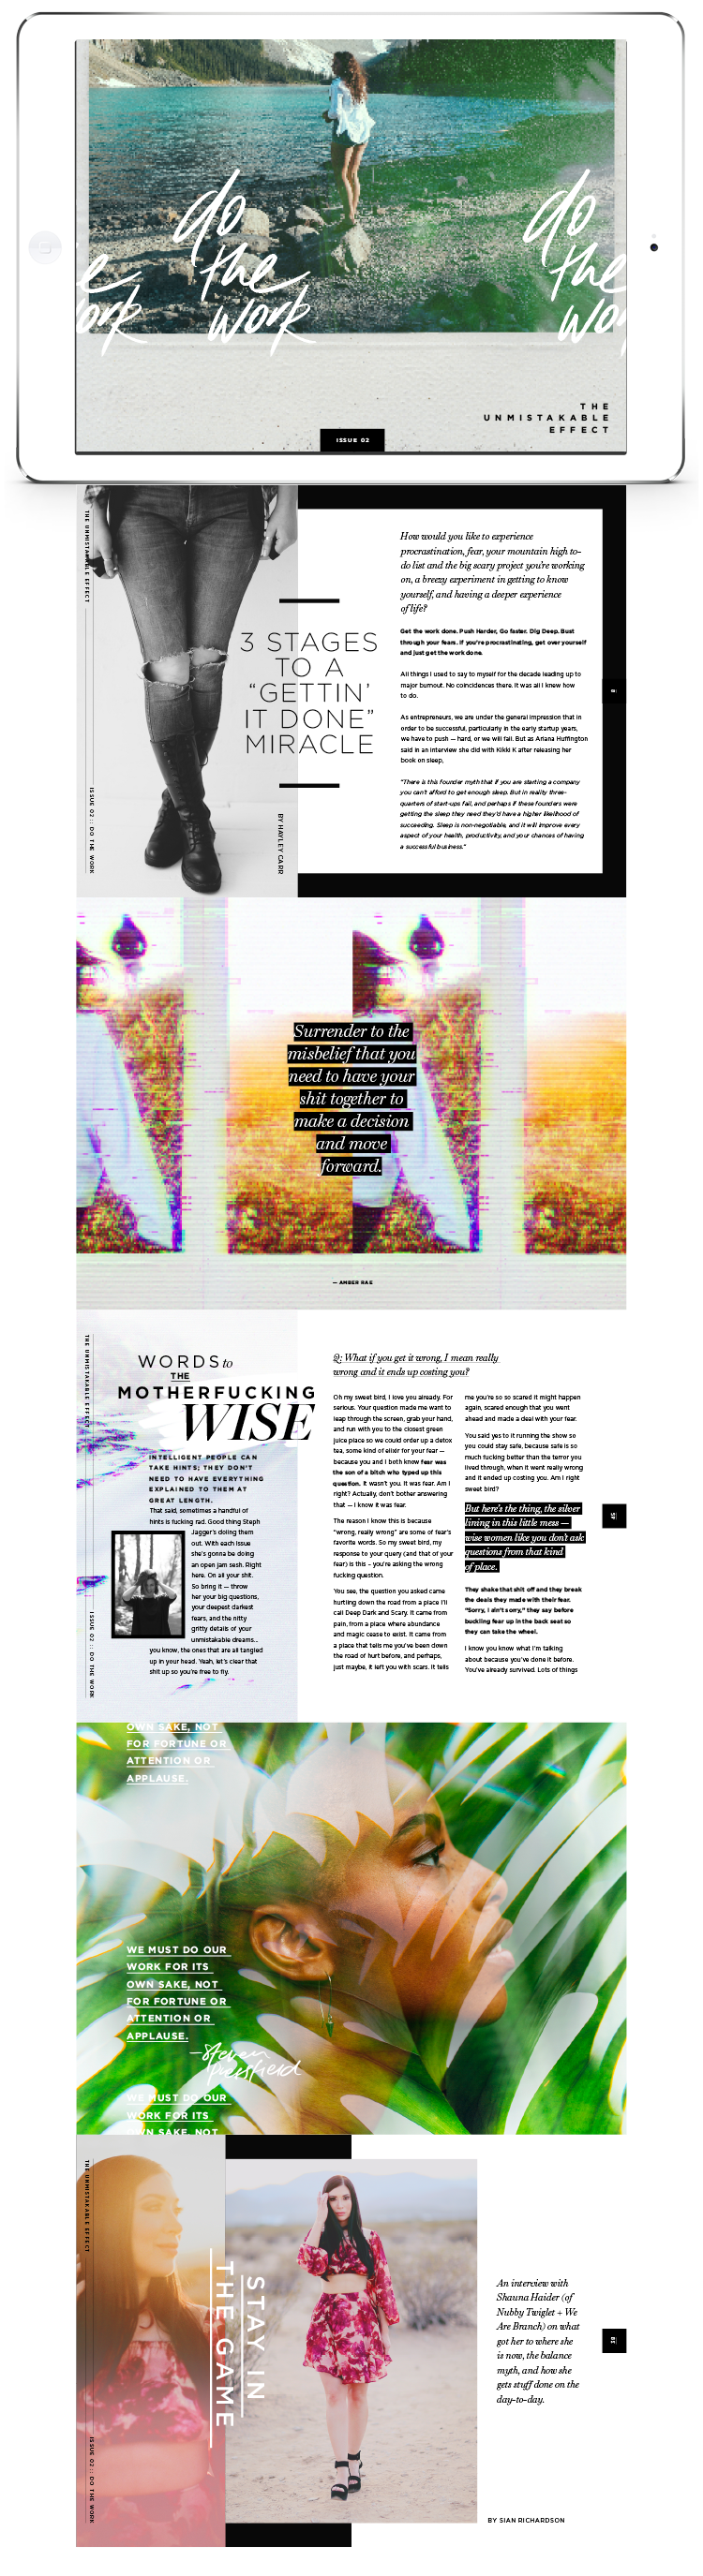 The Unmistakable Effect :: Digital Magazine | theunmistakableeffect.co